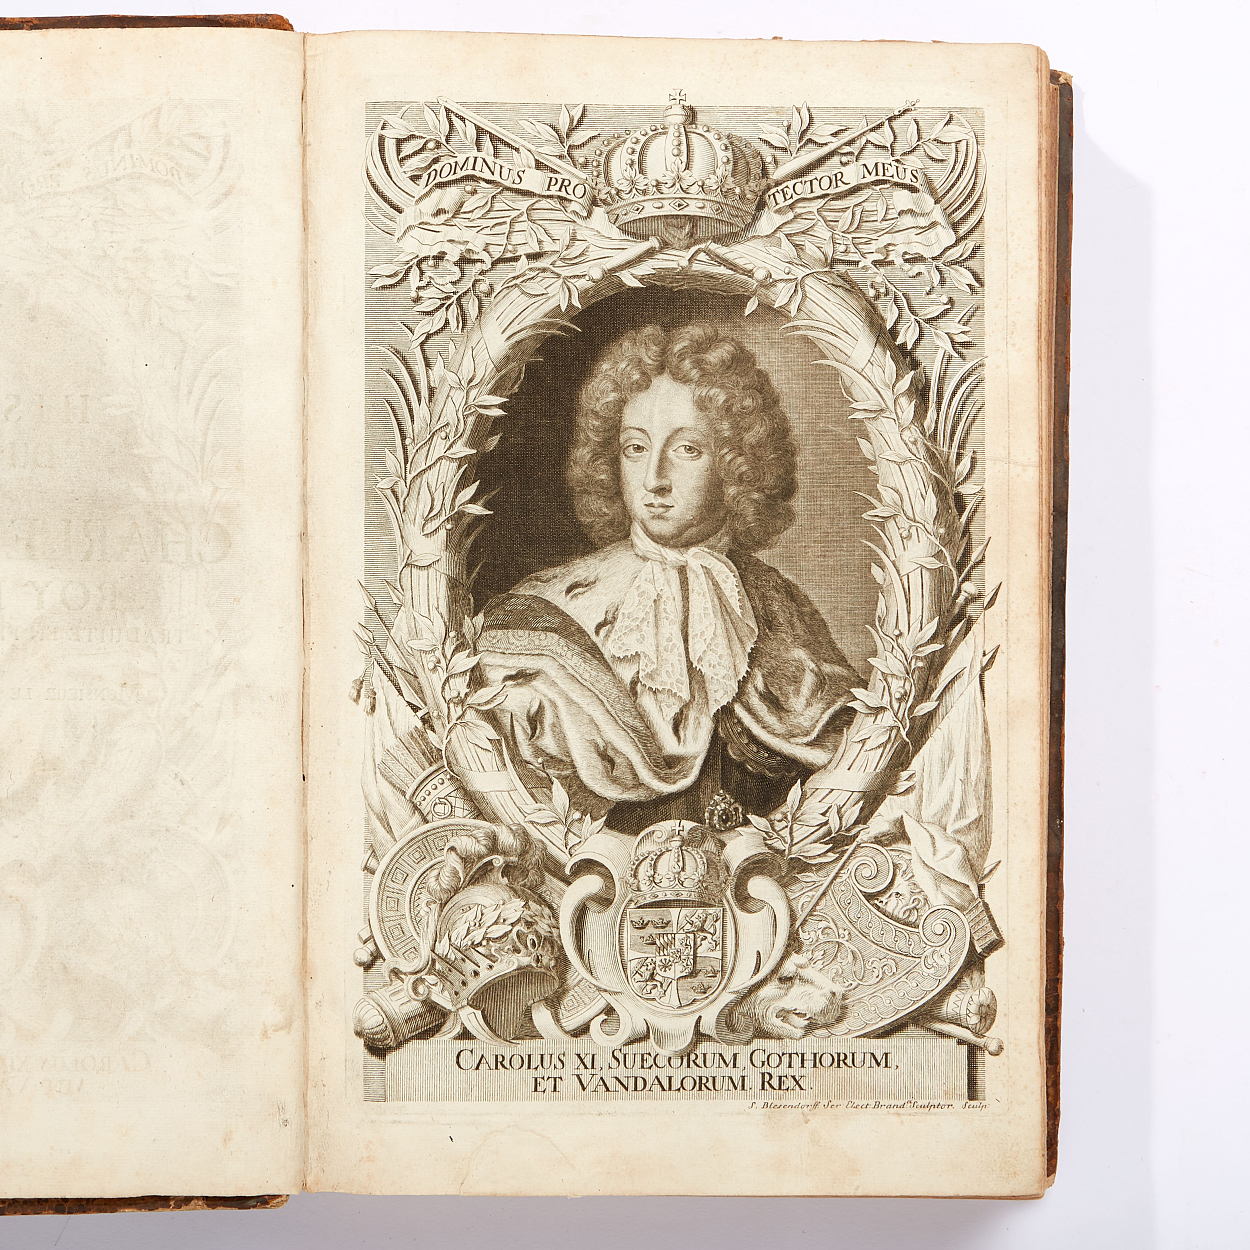 Pufendorf on Charles X Gustave in French 1697